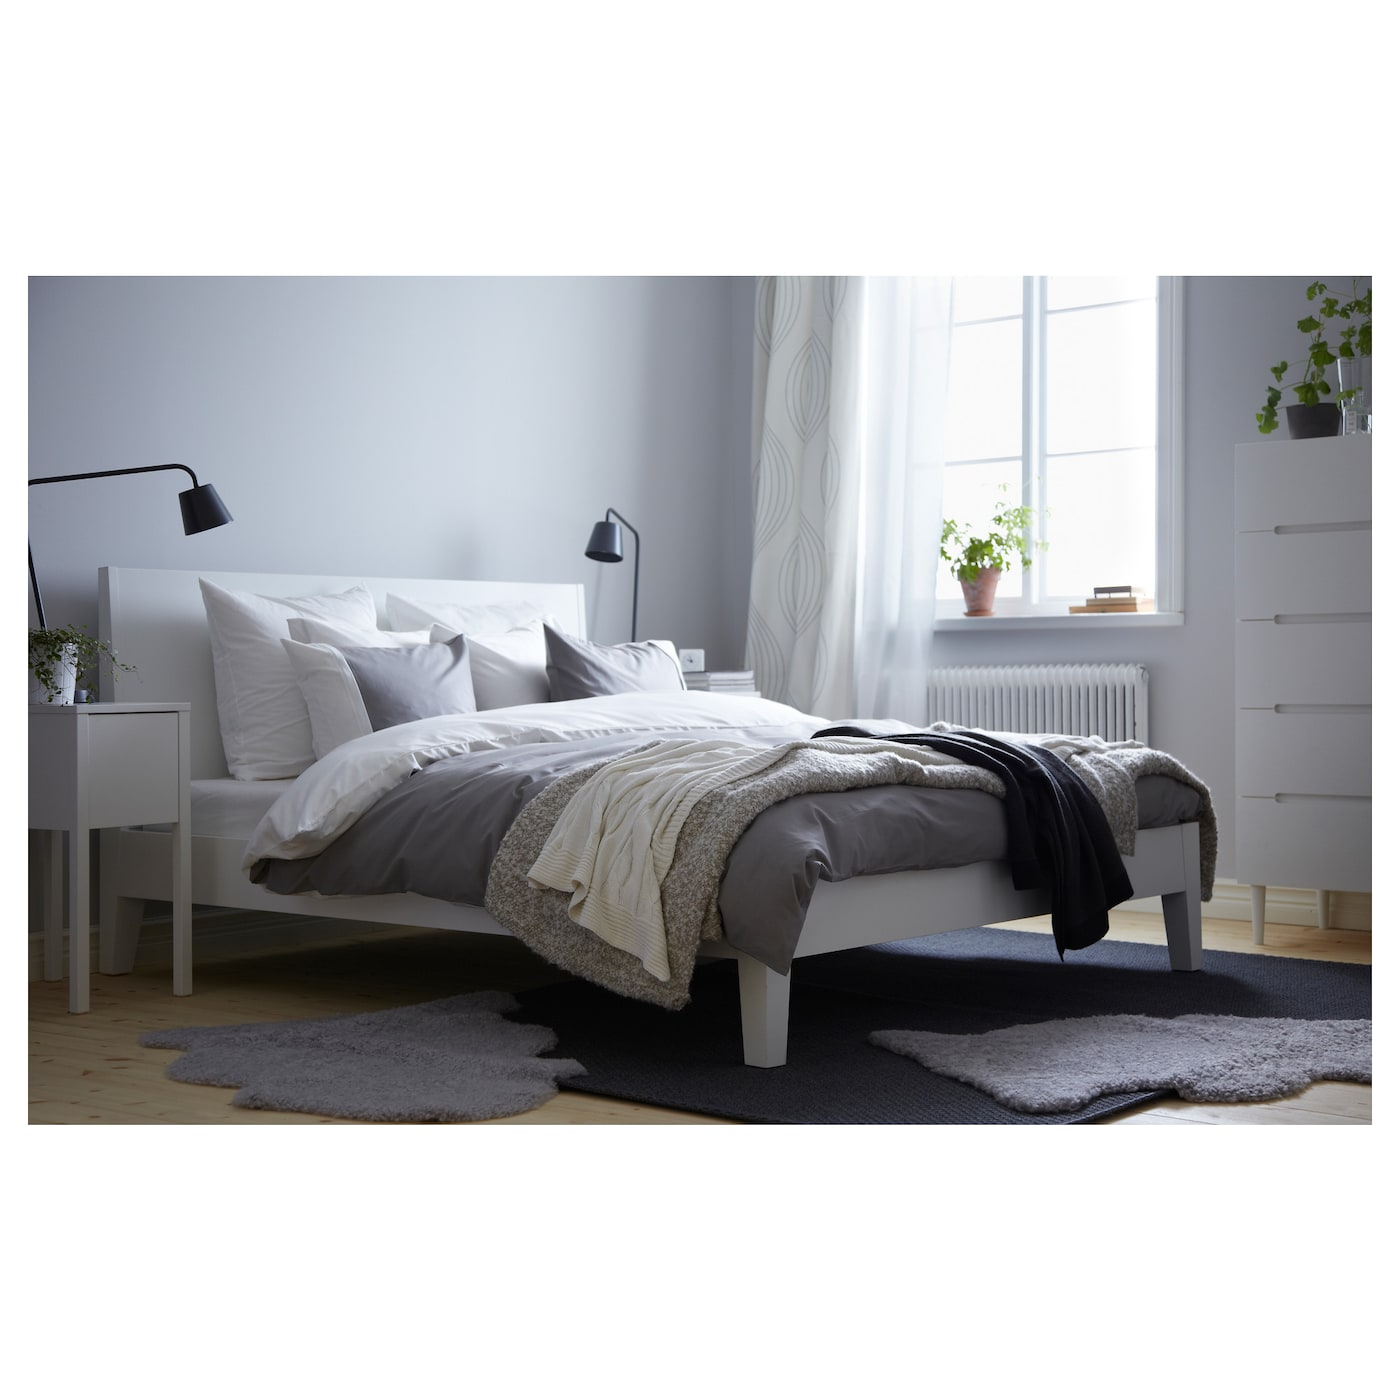 nordli bed frame white leirsund 140x200 cm ikea. Black Bedroom Furniture Sets. Home Design Ideas